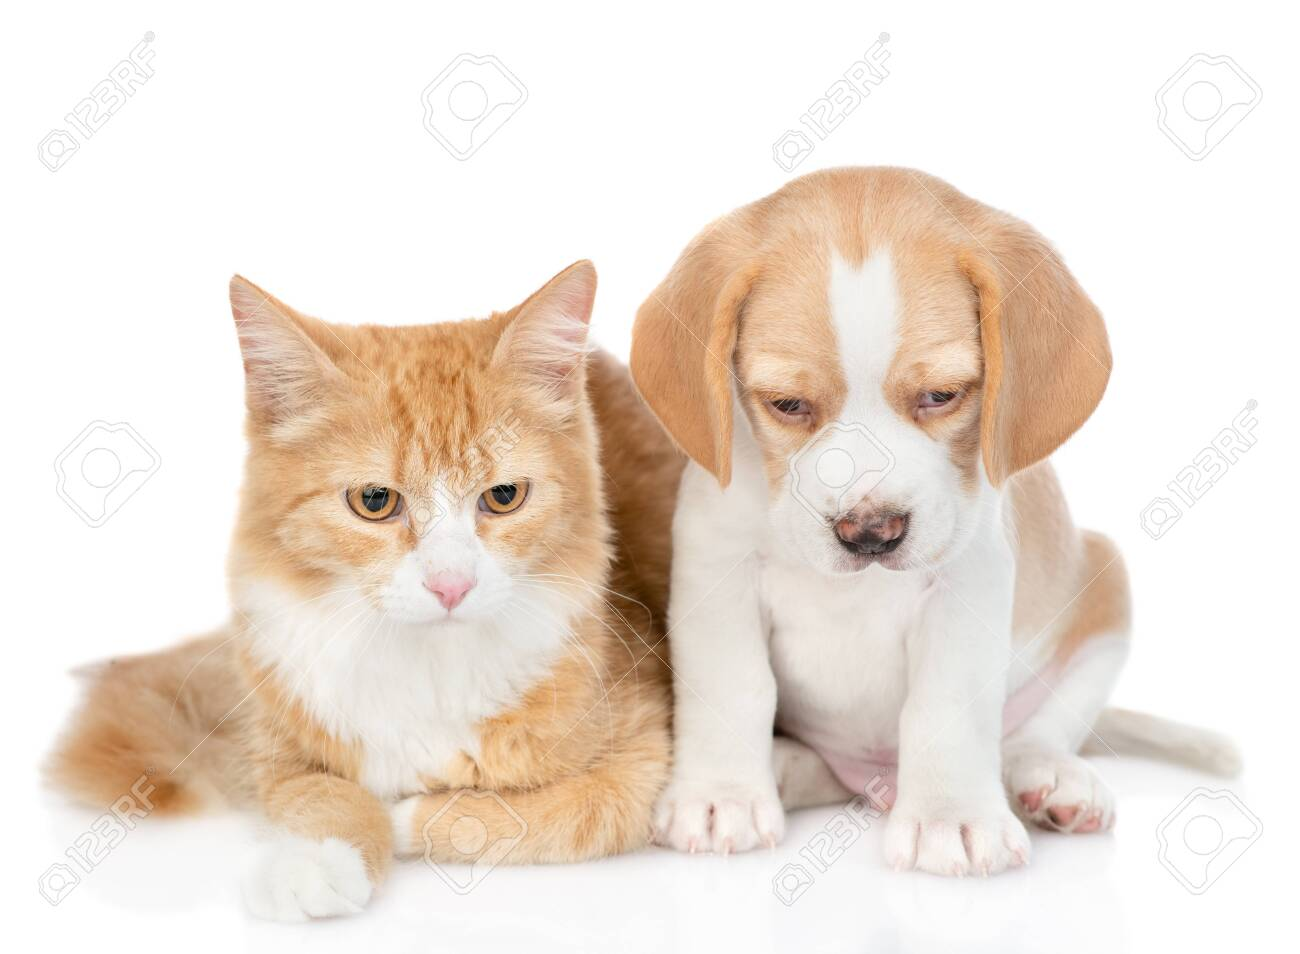 Beagle Puppy And Red Tabby Cat Looking Down Together Isolated Stock Photo Picture And Royalty Free Image Image 130264483